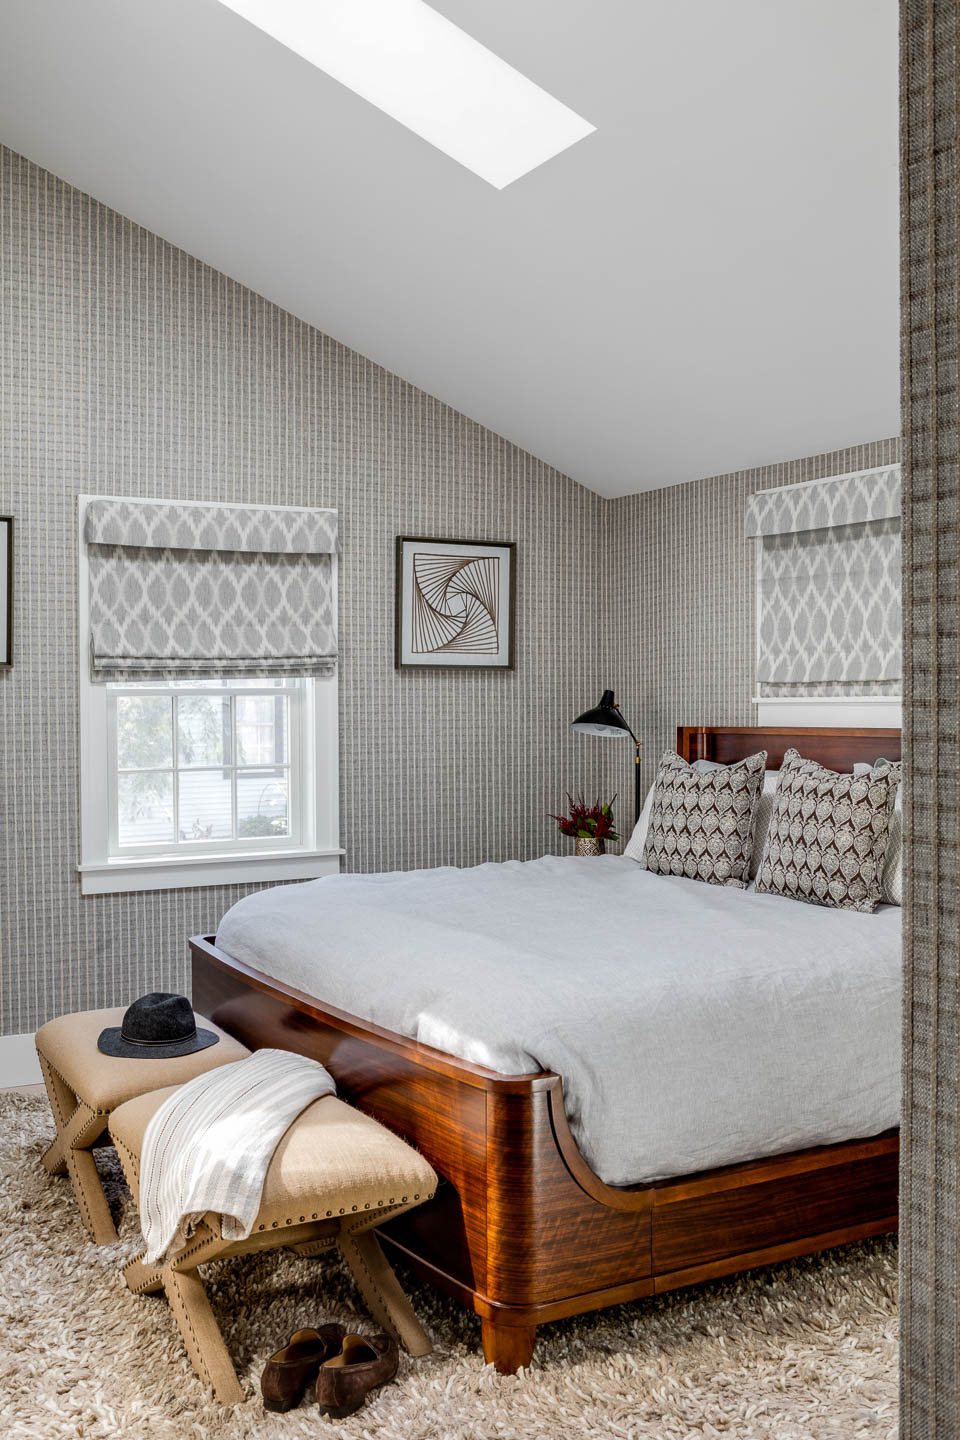 Newport Rhode Island, Rhode Island interior design, New England interior designer, bedroom